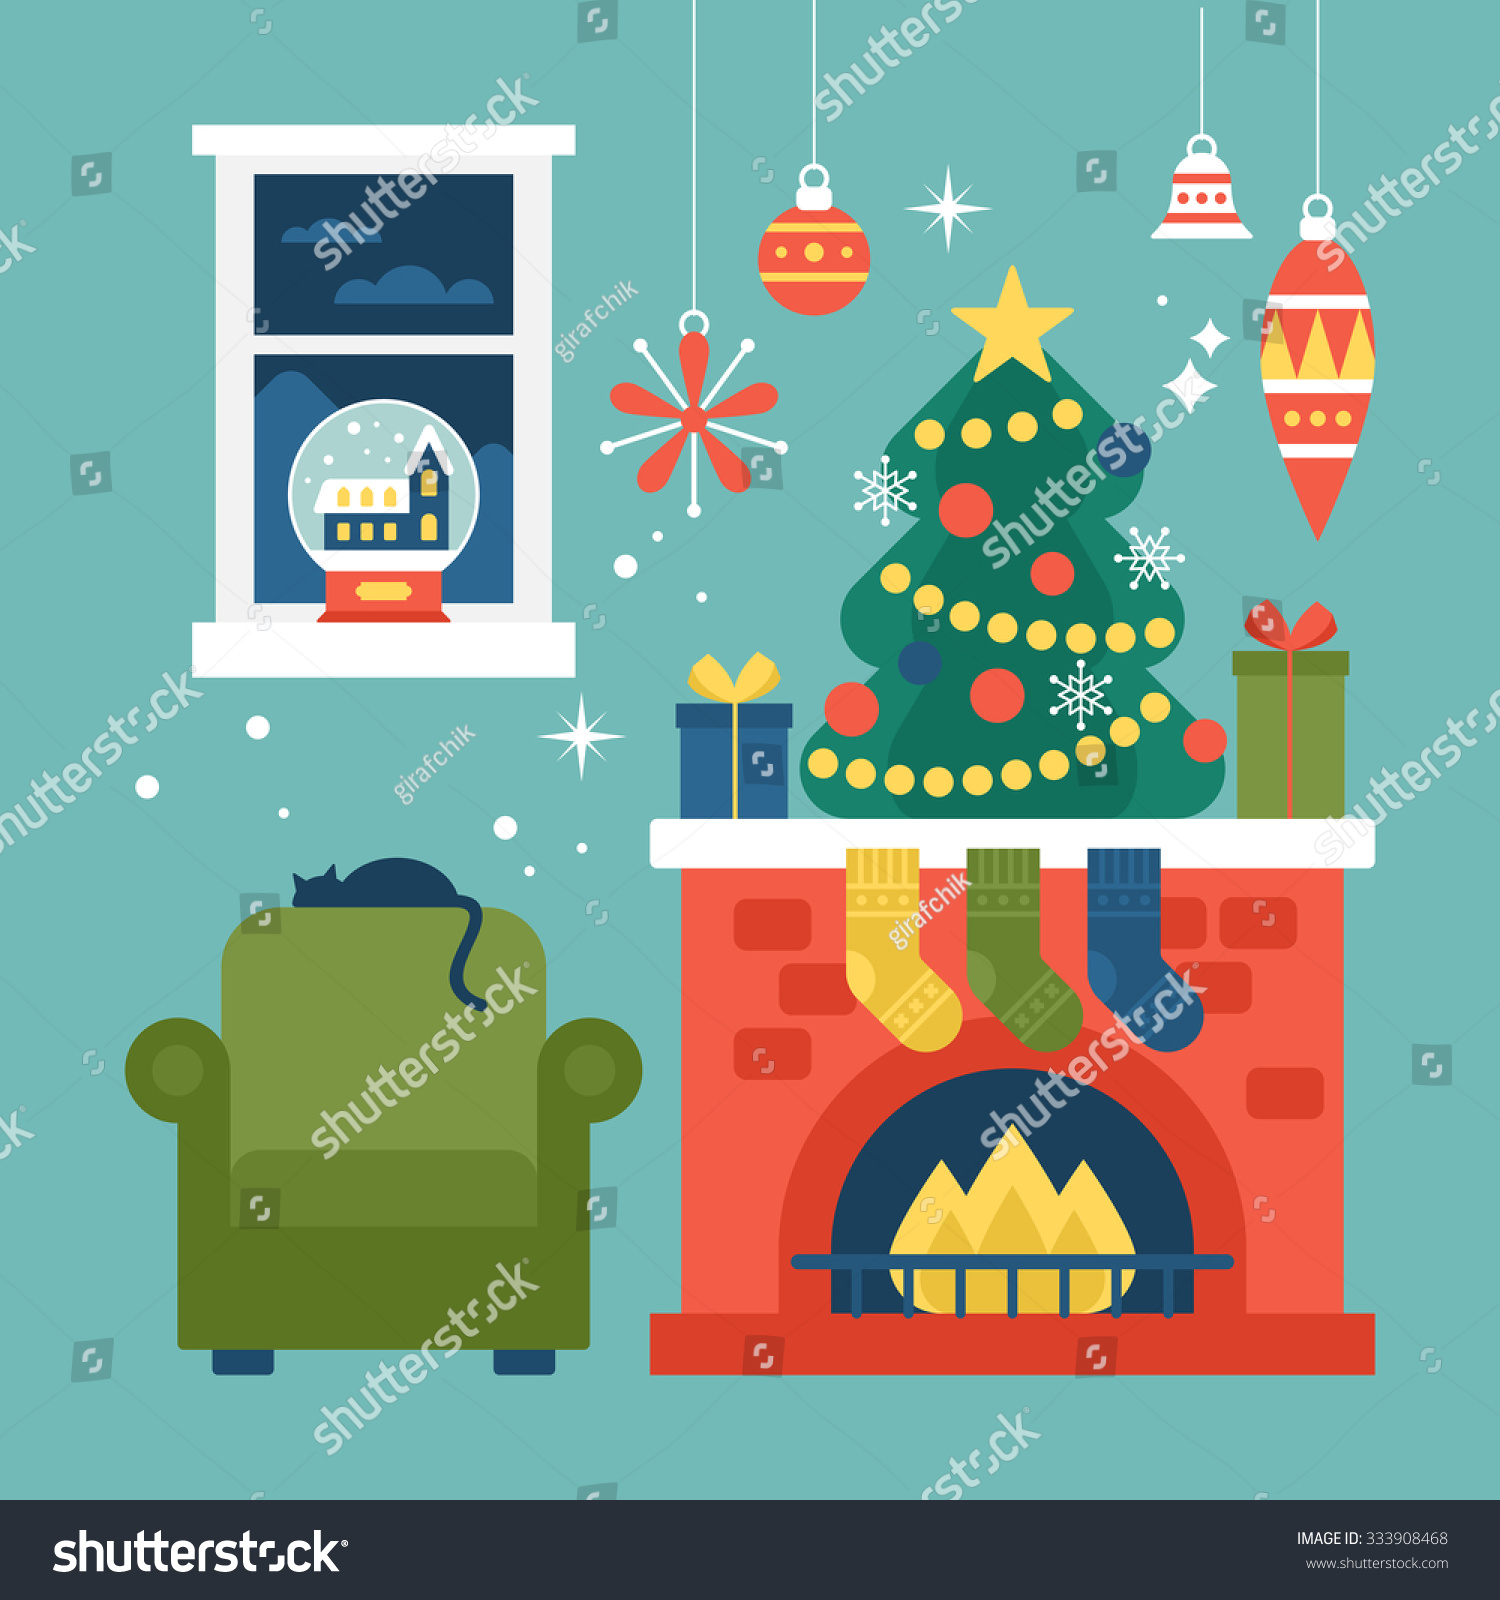 Modern creative christmas greeting card design stock vector 333908468 shutterstock - Creative modern christmas tree designs for christmas celebration ...